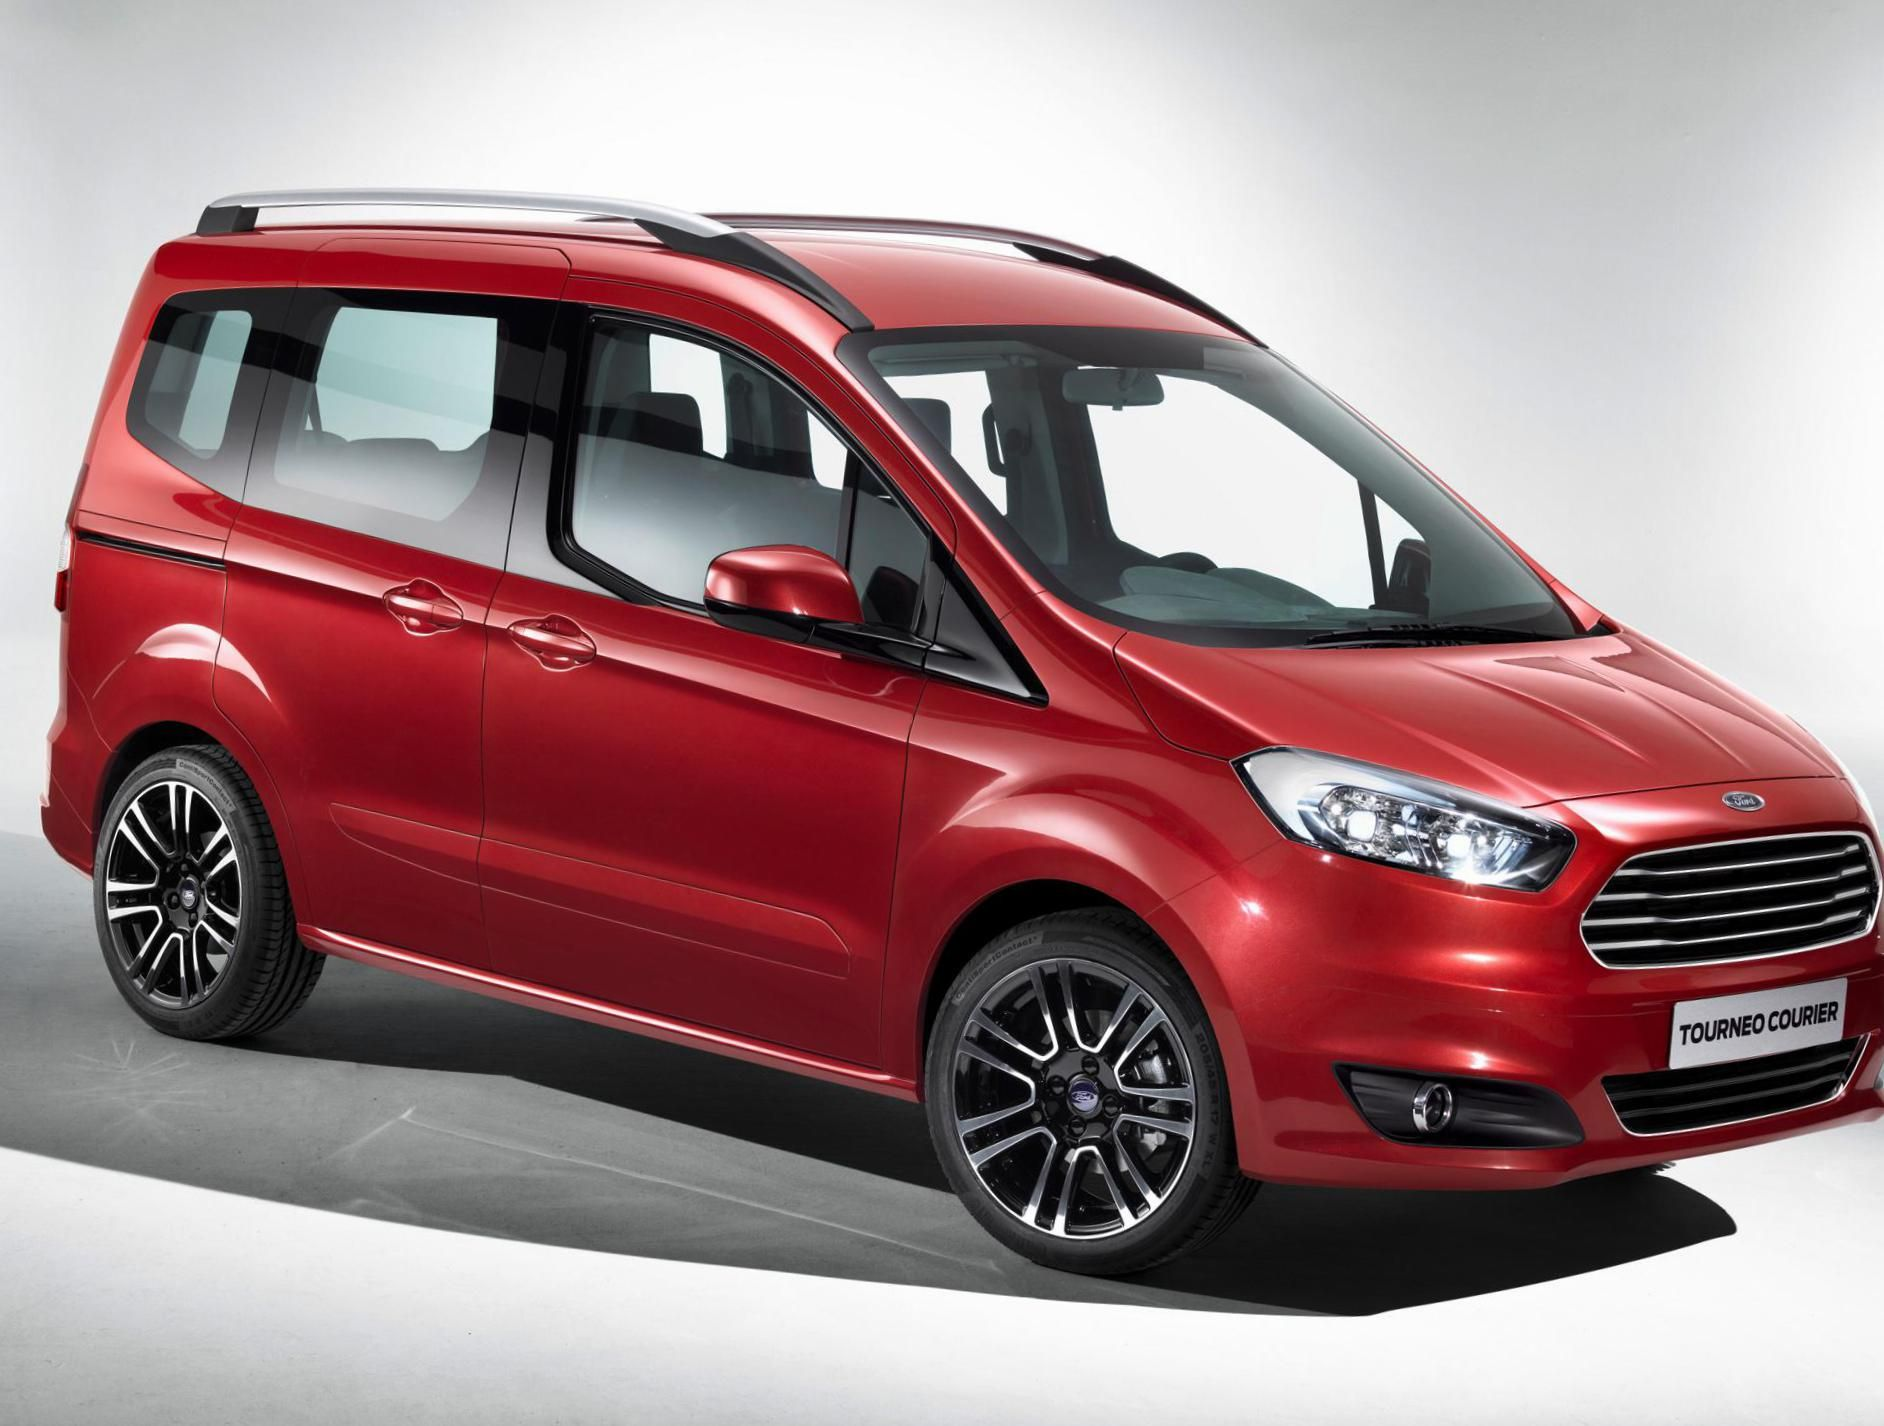 Ford tourneo courier pictures to pin on pinterest - Find This Pin And More On Mis Autos Tourneo Courier Ford Characteristics